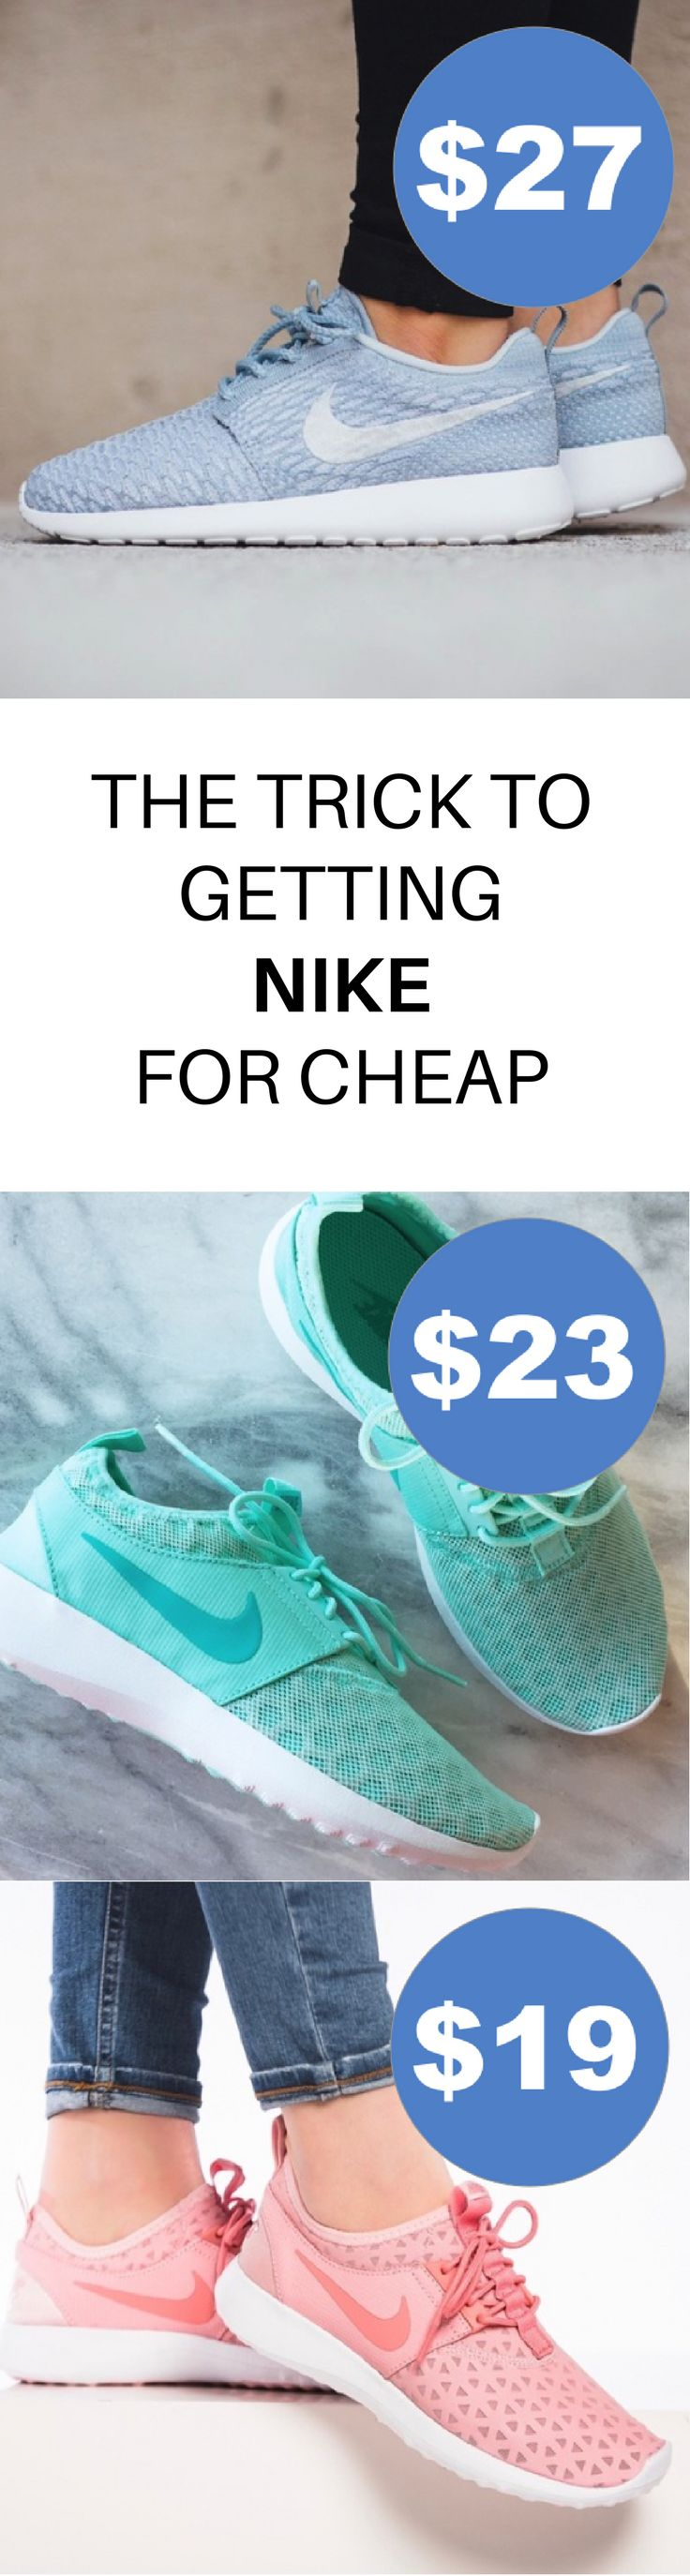 Find Nike and more Up to 80% off! Install the FREE app and shop now! As featured in Cosmopolitan & Good Morning America.  Poshmark - Buy & Sell Fashion